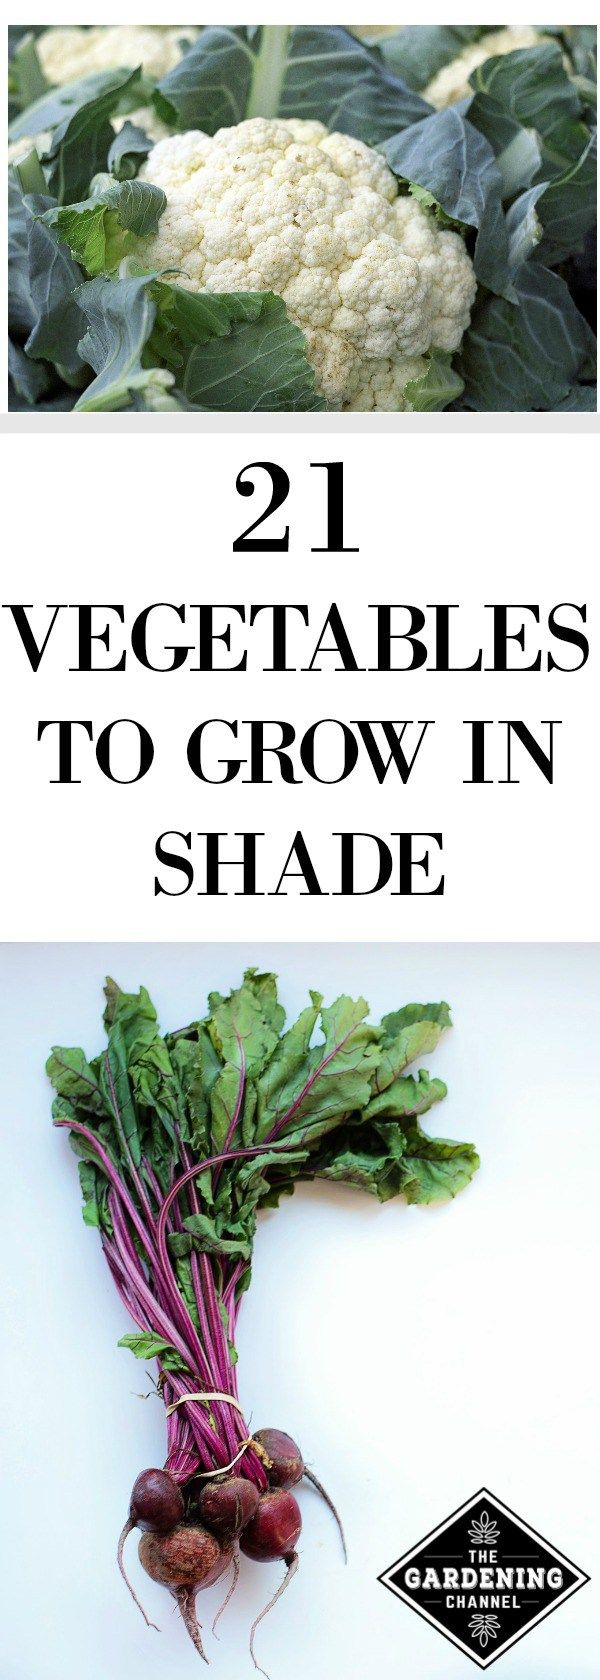 3681 Best Grow Food Not Lawns Gardening Tips And Ideas 400 x 300